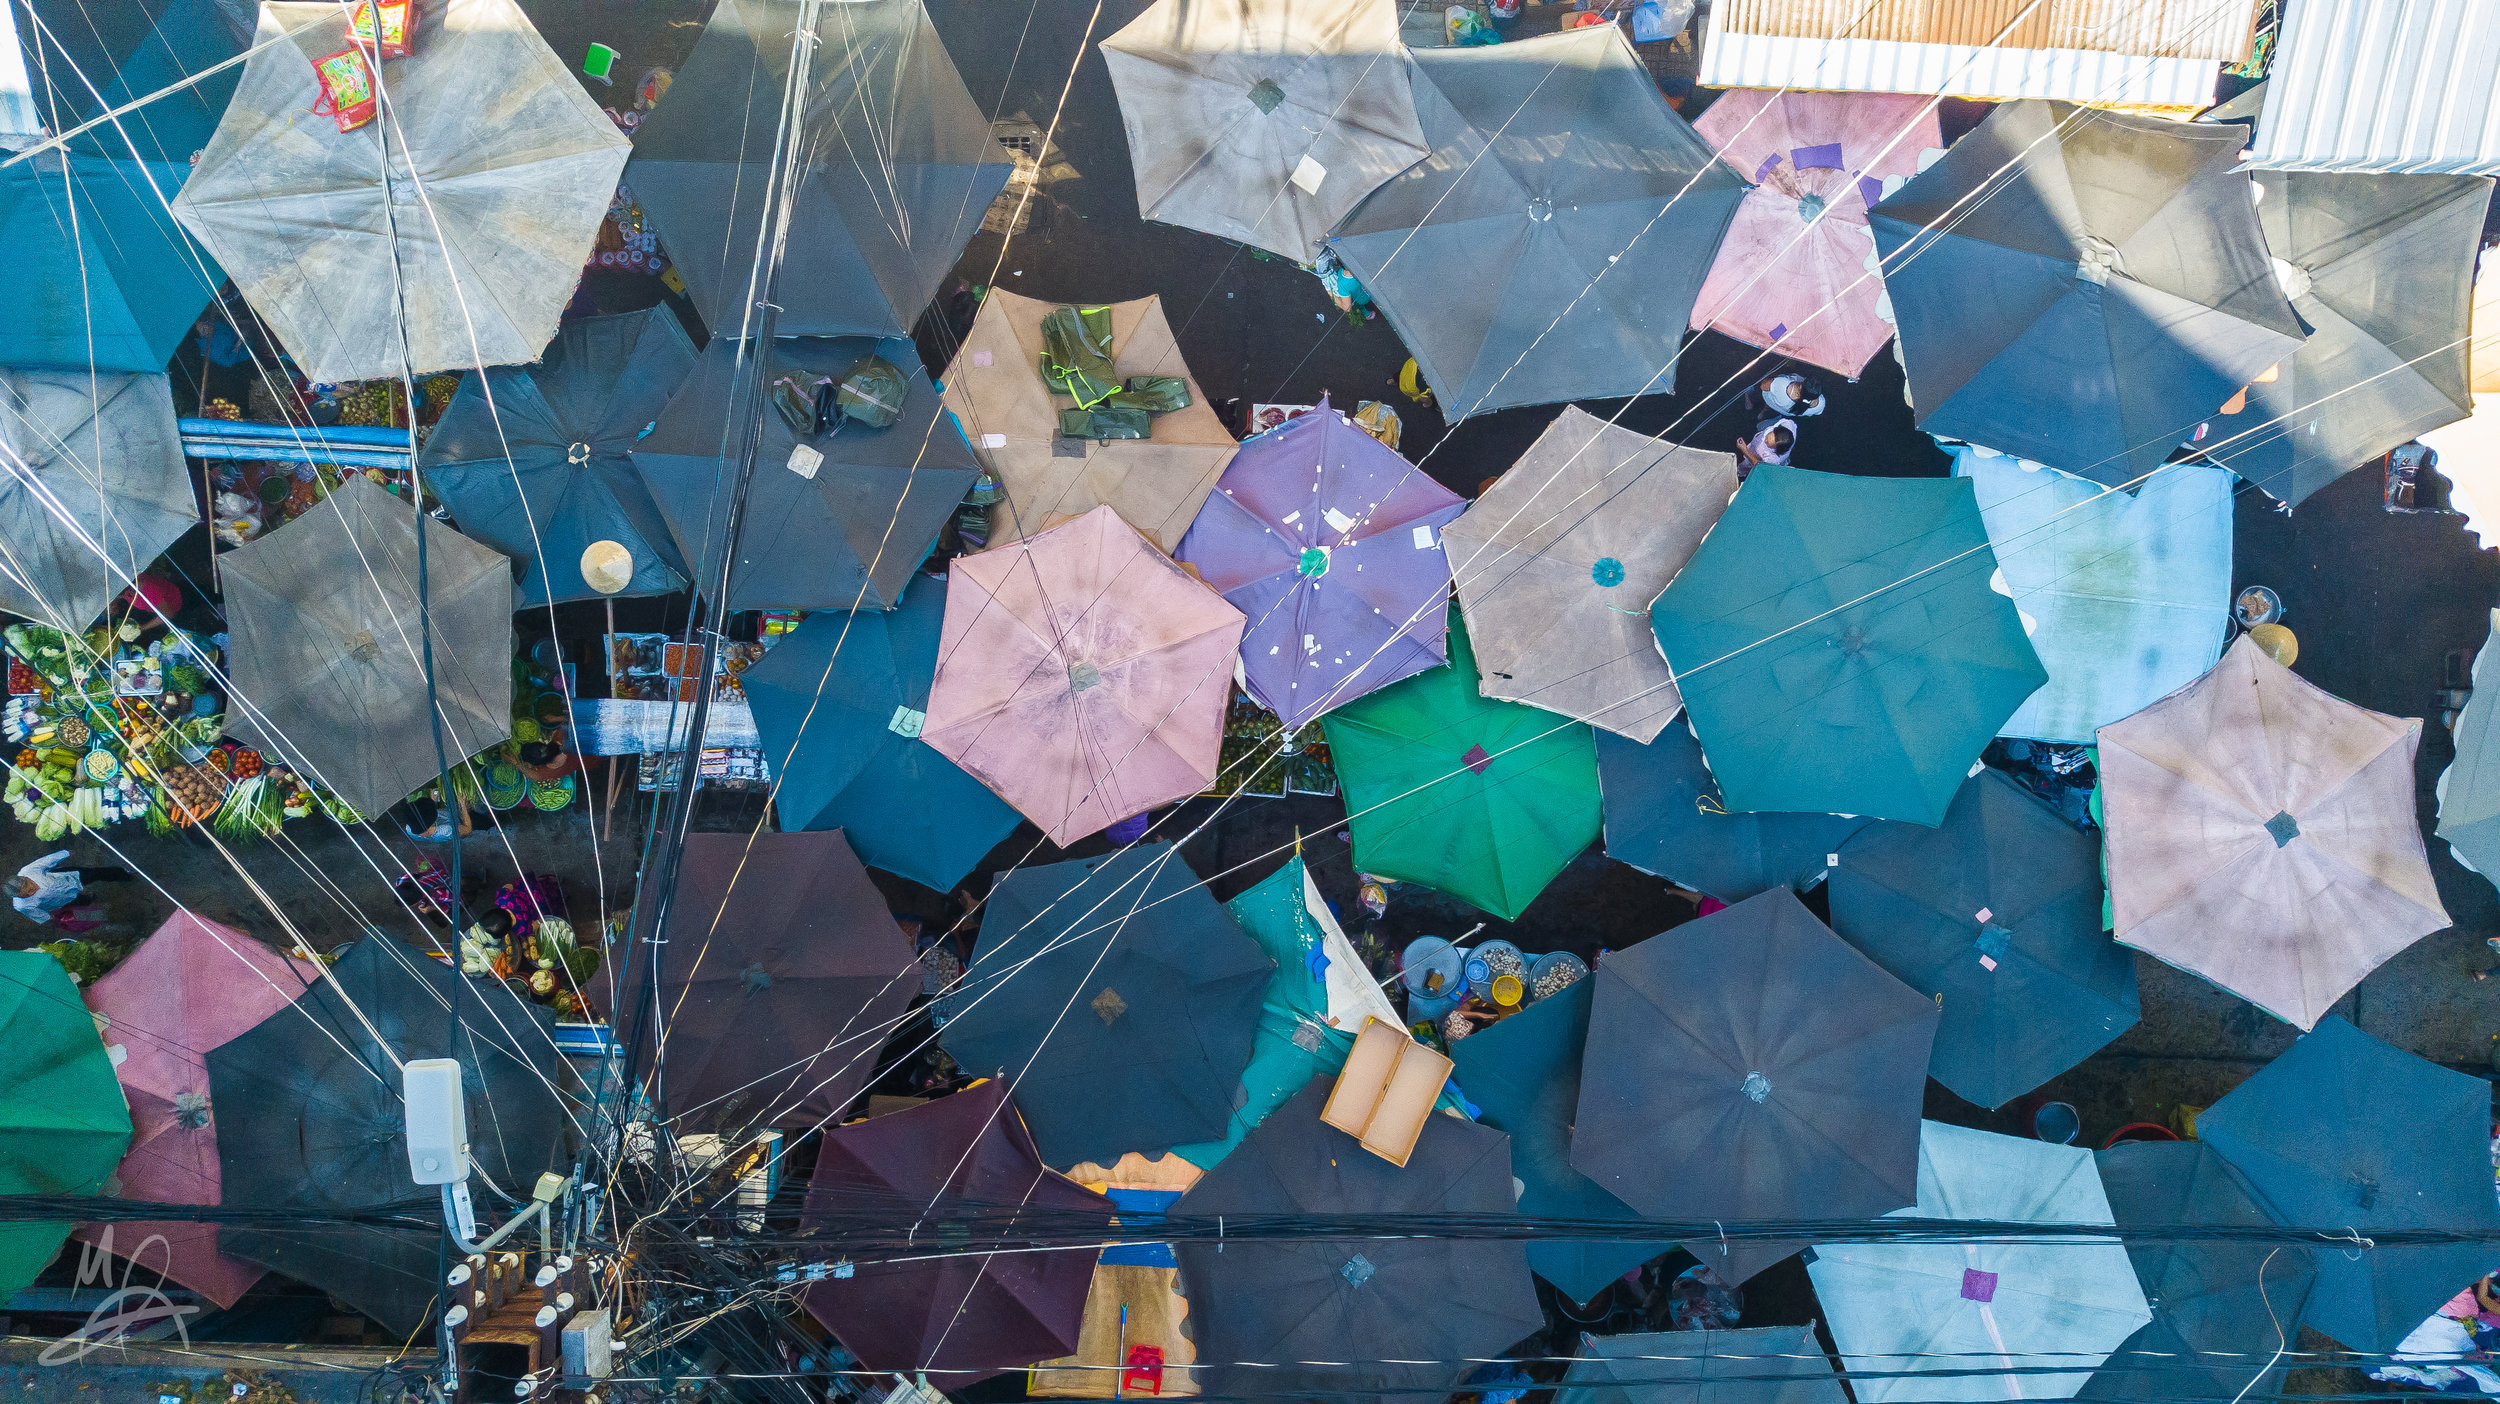 Umbrellas in a market 2/3